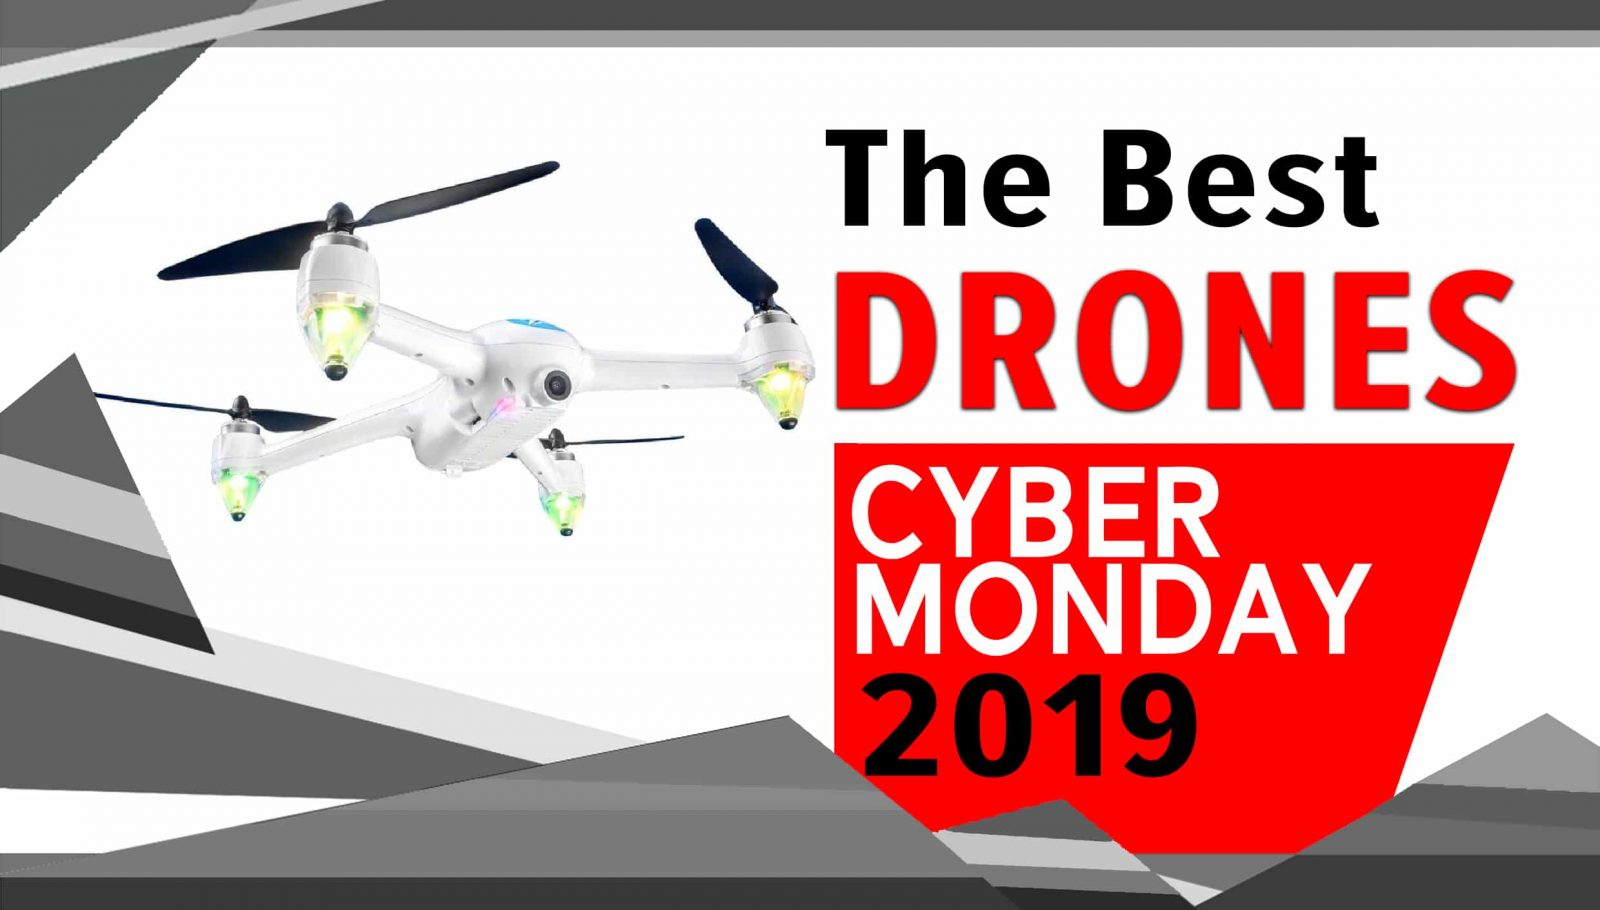 BEST CYBER MONDAY DRONES